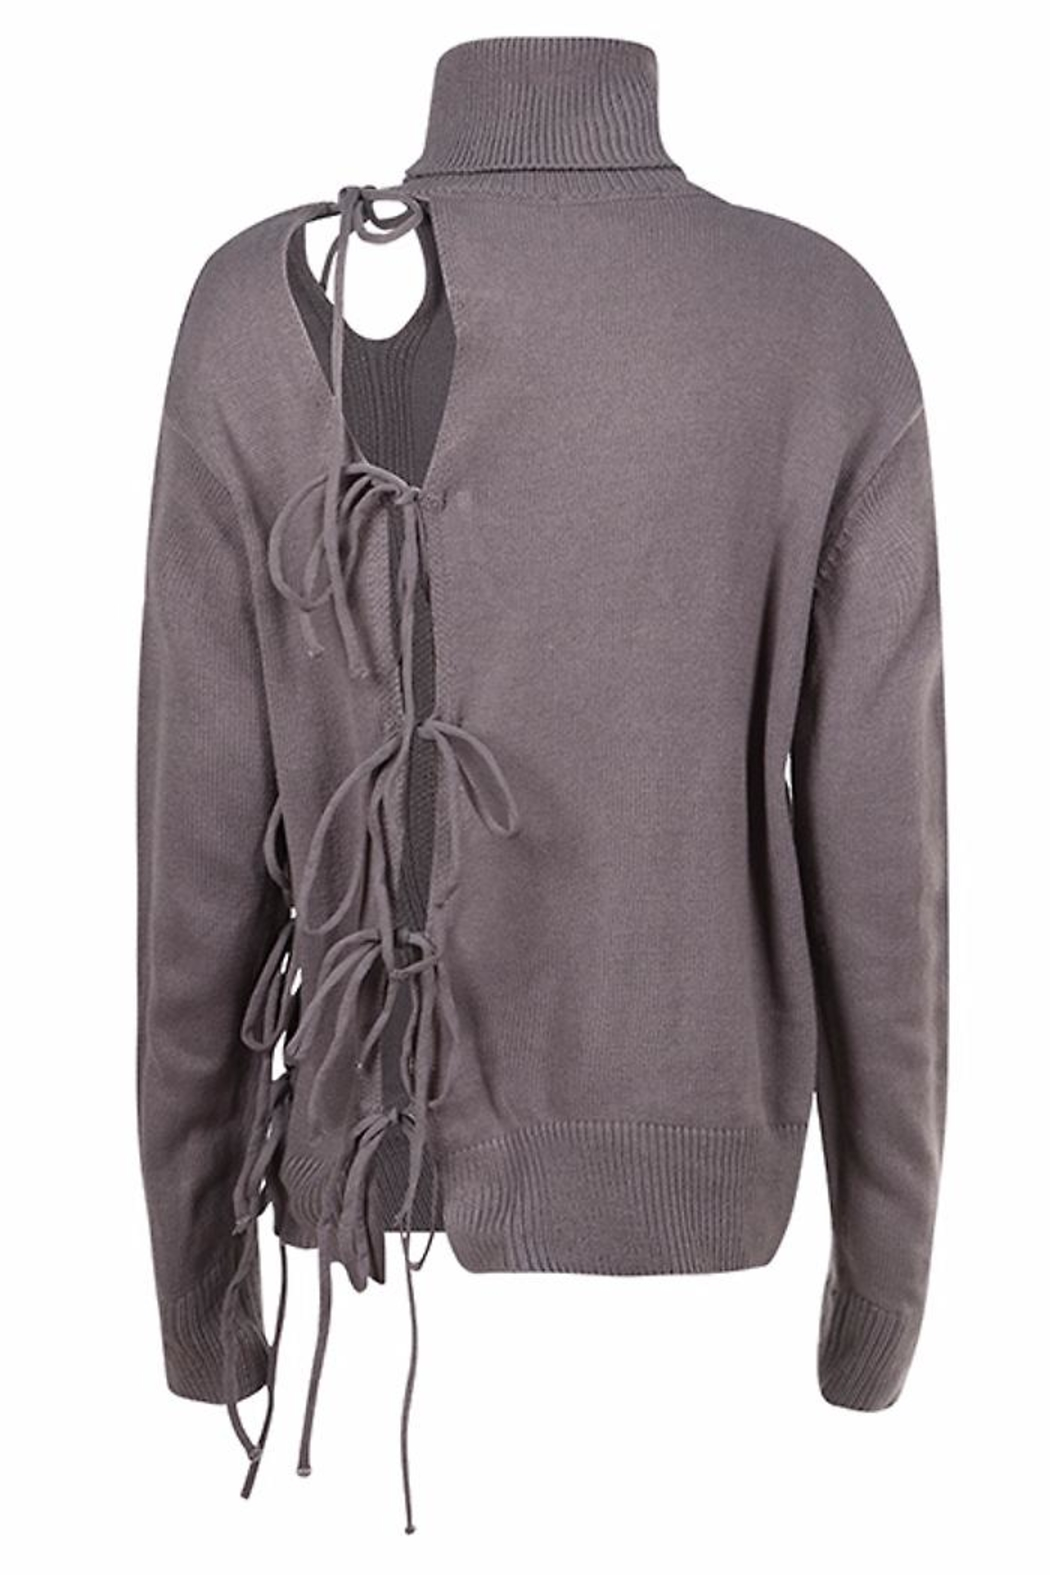 People Outfitter Alice Lace-Up Sweater - Side Cropped Image